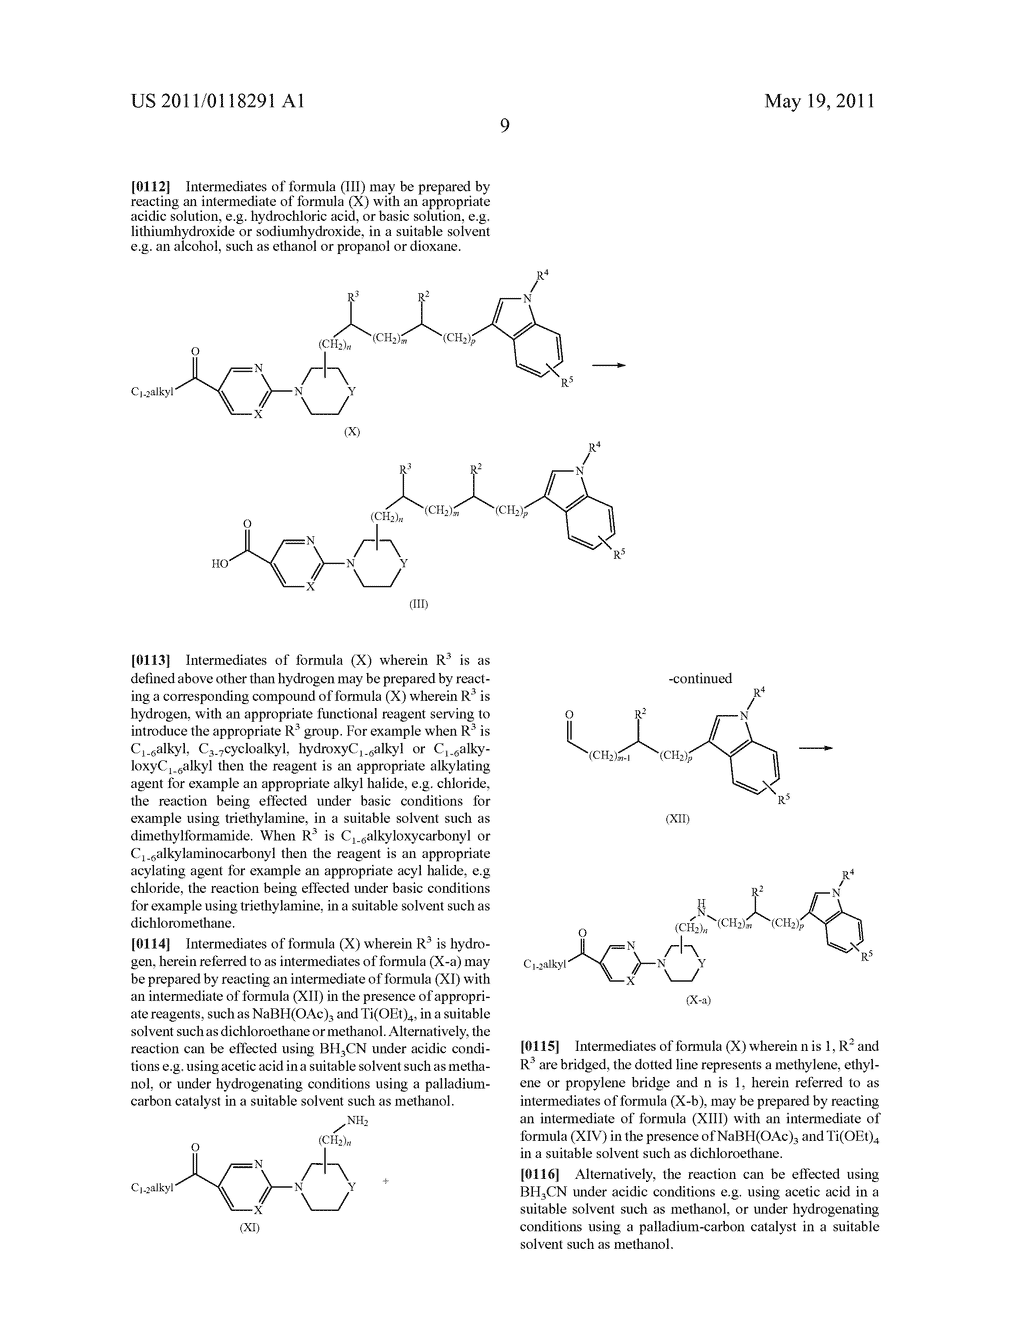 SUBSTITUTED INDOLYL-ALKYL-AMINO-DERIVATIVES AS INHIBITORS OF HISTONE DEACETYLASE - diagram, schematic, and image 10